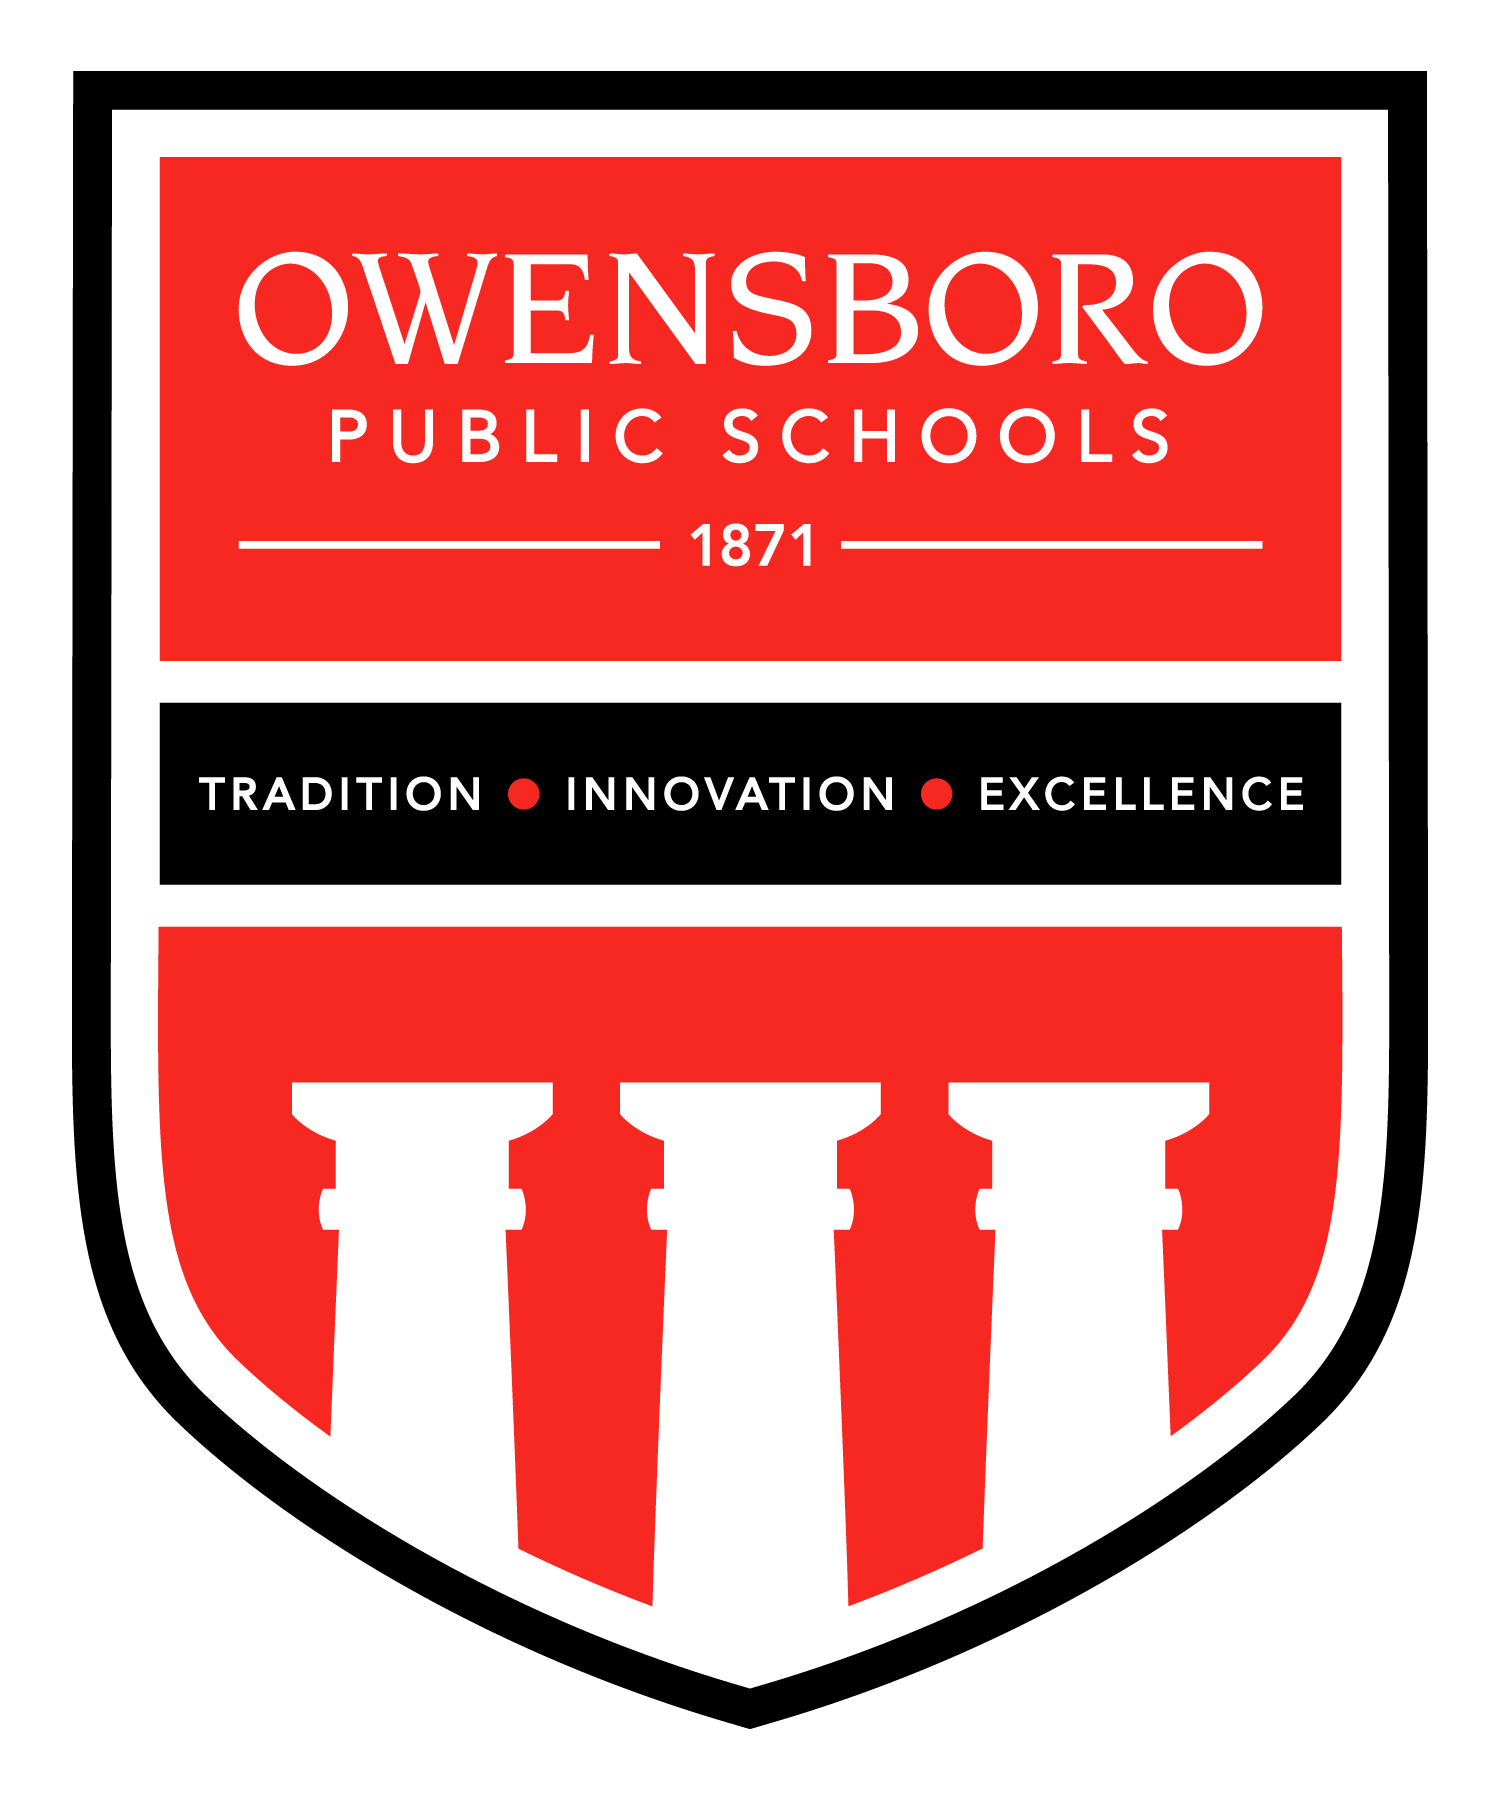 Owensboro Public Schools to host recruitment event